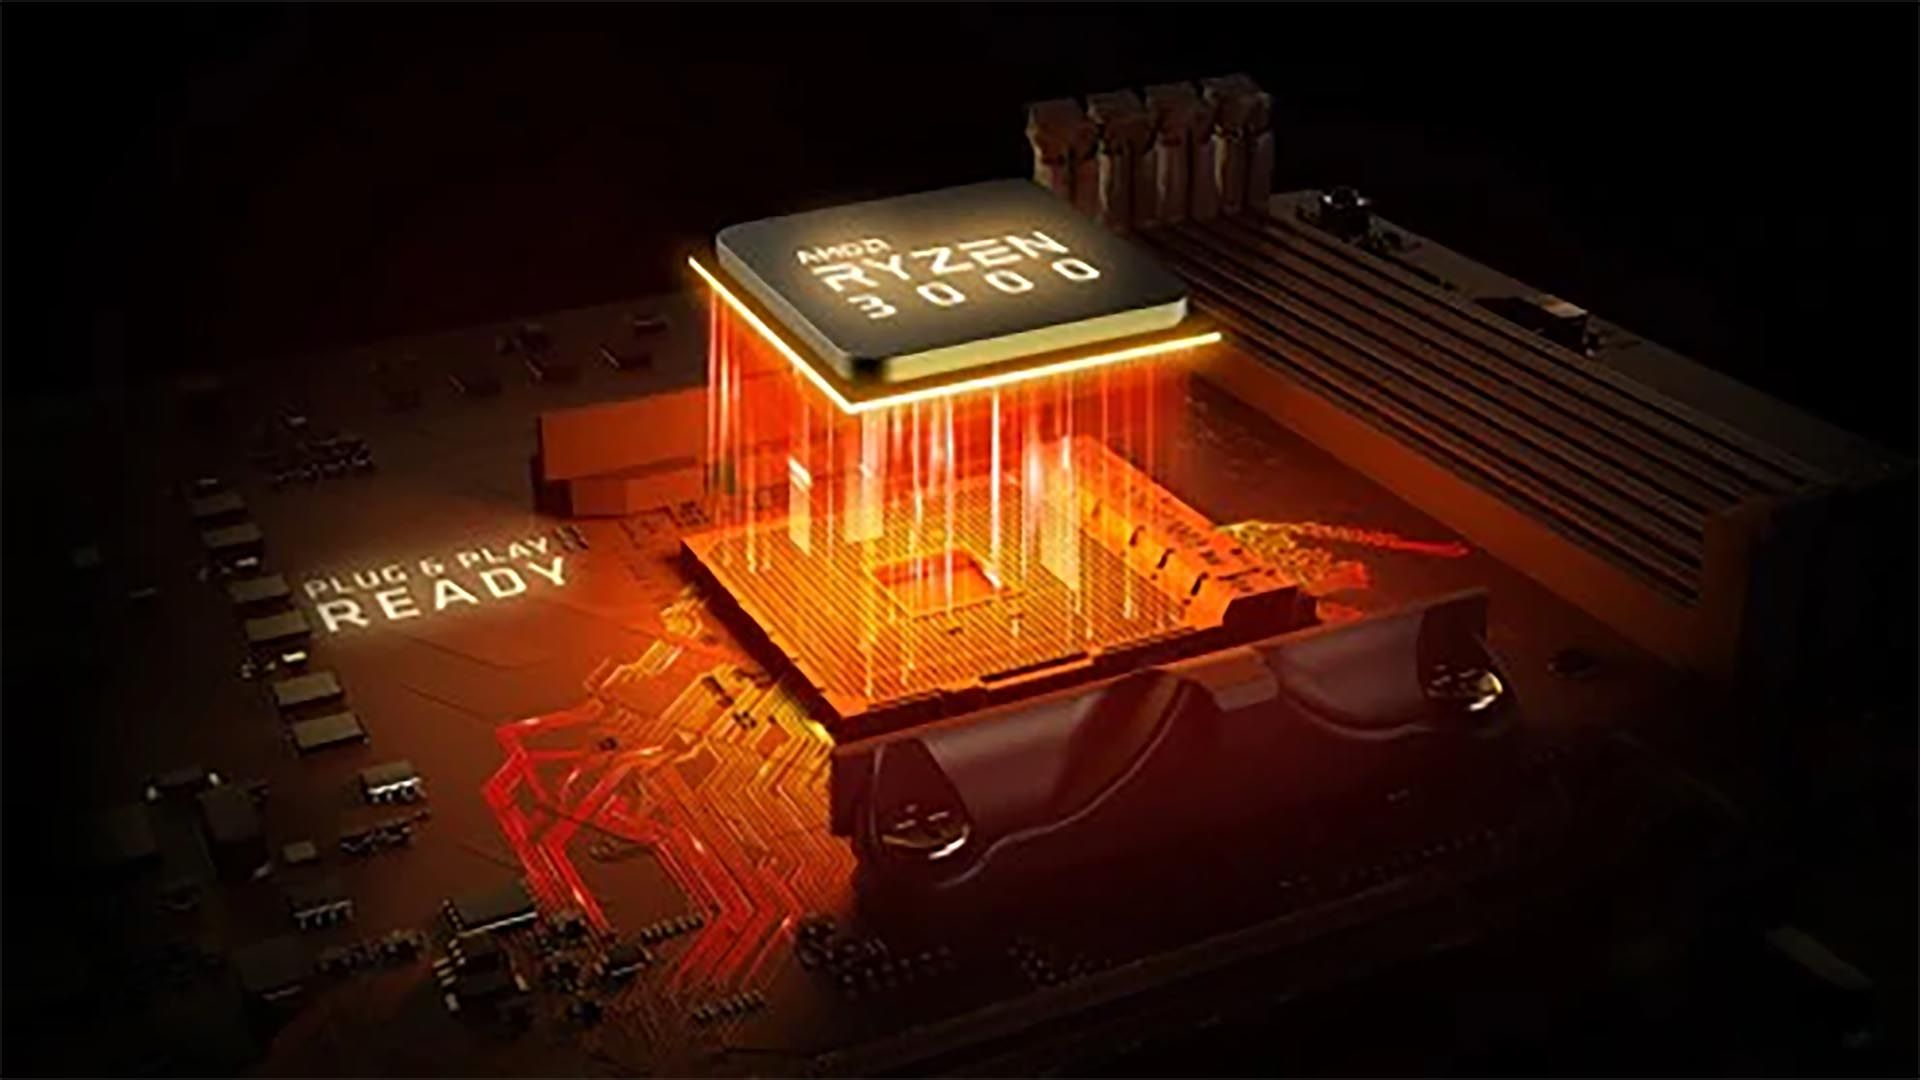 Amd Is Discharging Its 7nm Ryzen 3000 Cpus On 7 7 Pentoz Technology Amd Gaming Chip Processor